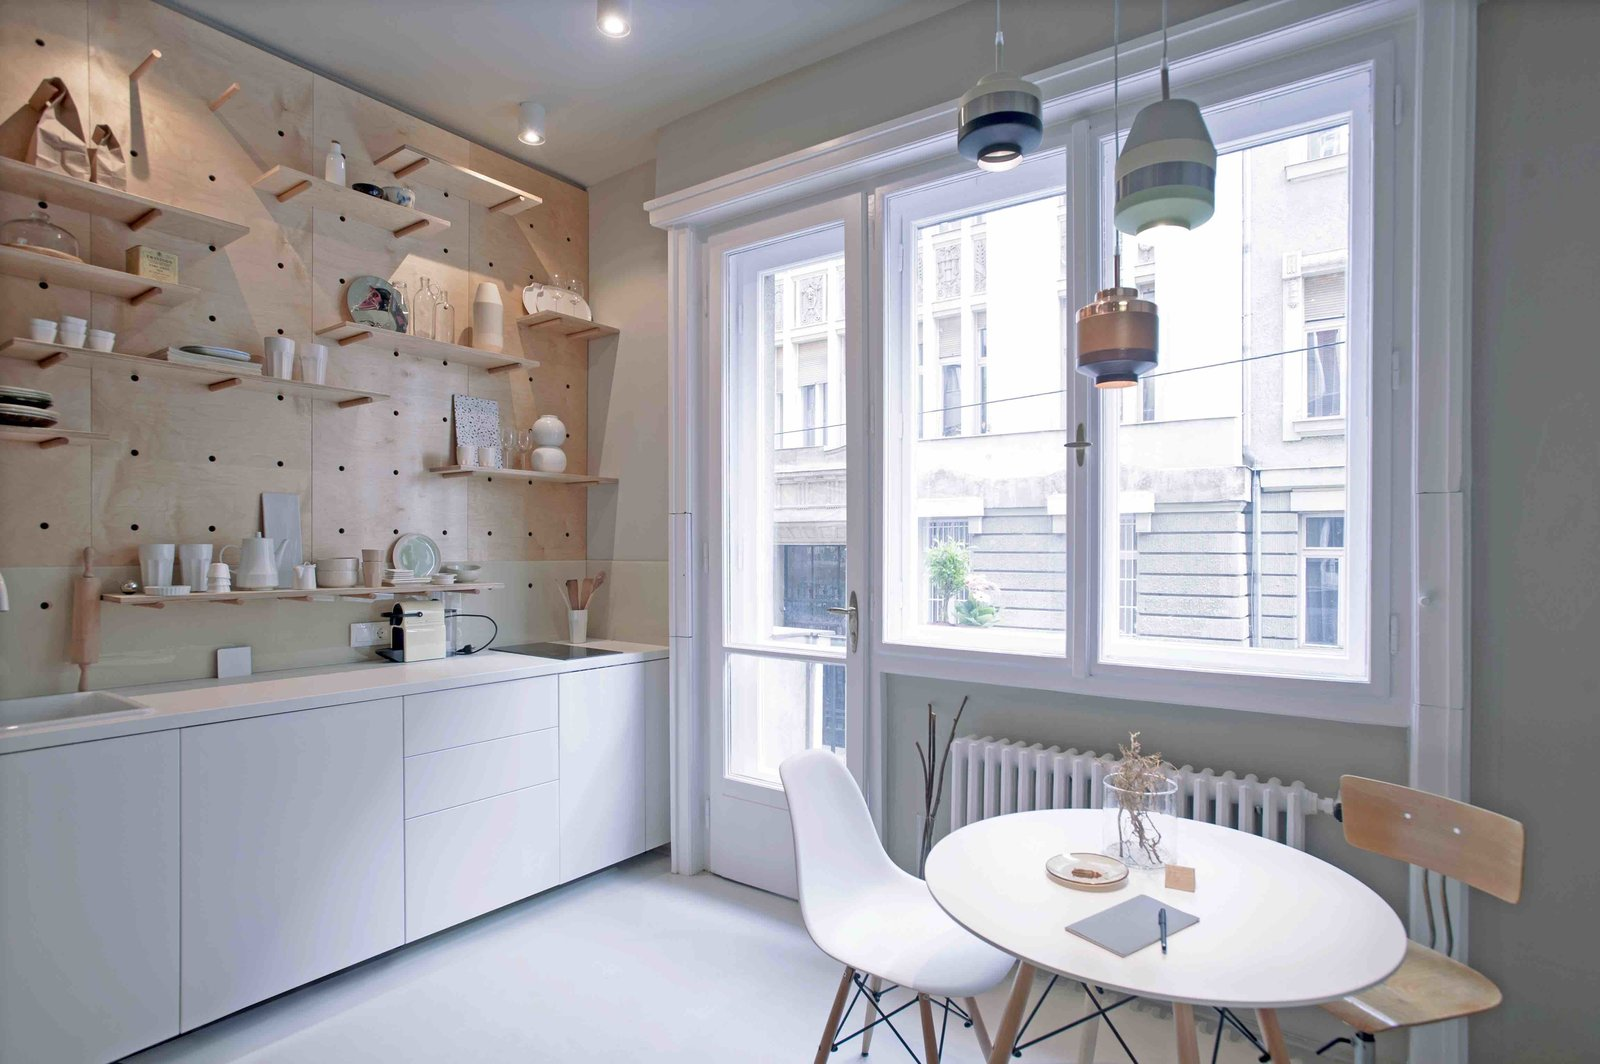 Kitchen, White, Wood, Pendant, Ceiling, Drop In, and Cooktops  Best Kitchen Wood Ceiling Photos from 3 Smart Storage Systems Maximize Space in a Tiny Studio Apartment in Budapest